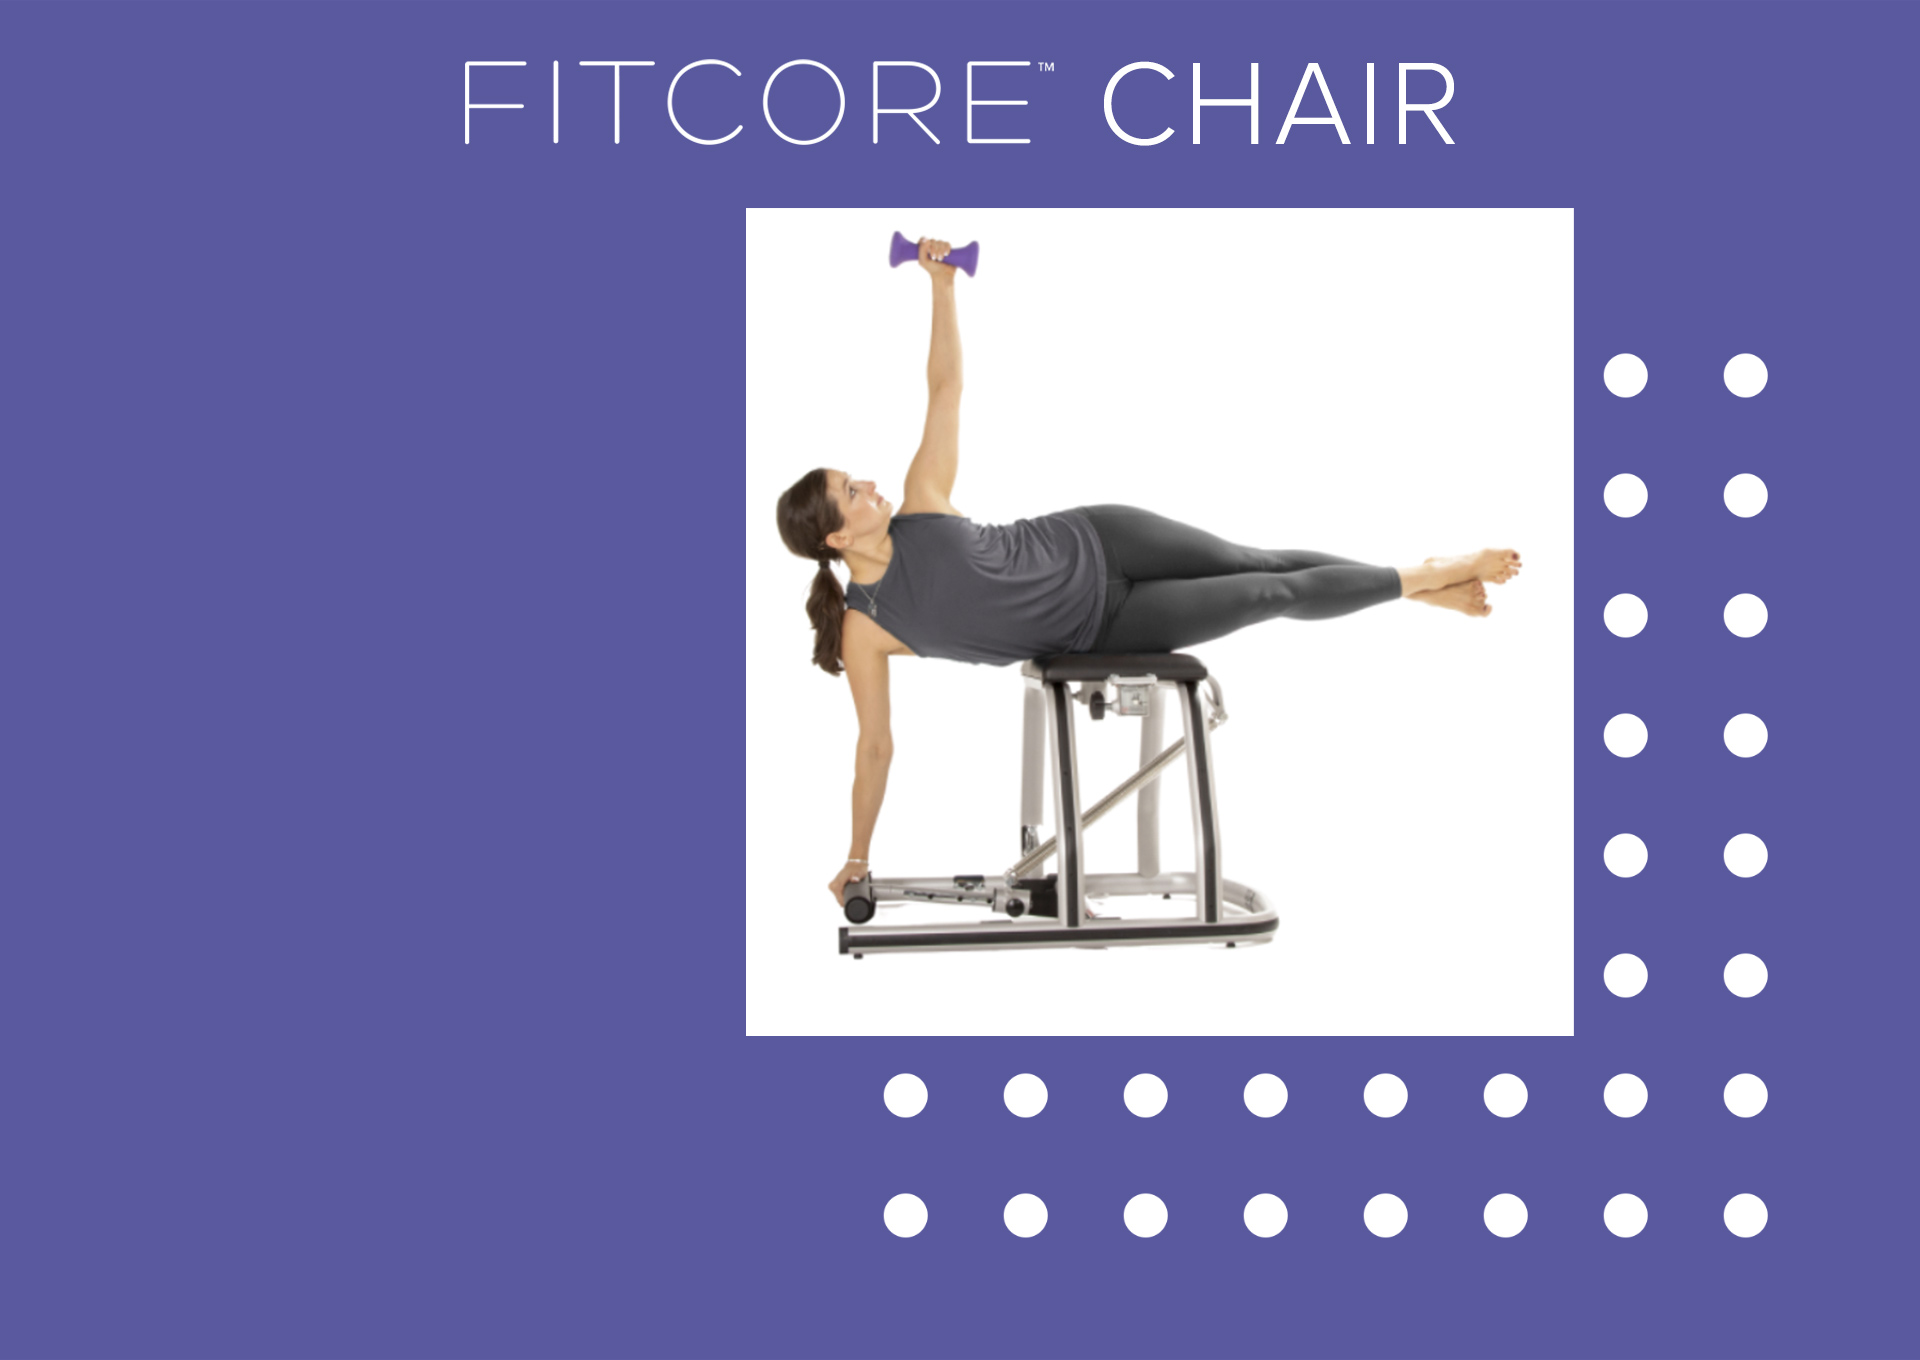 FitCore™ Chair Image